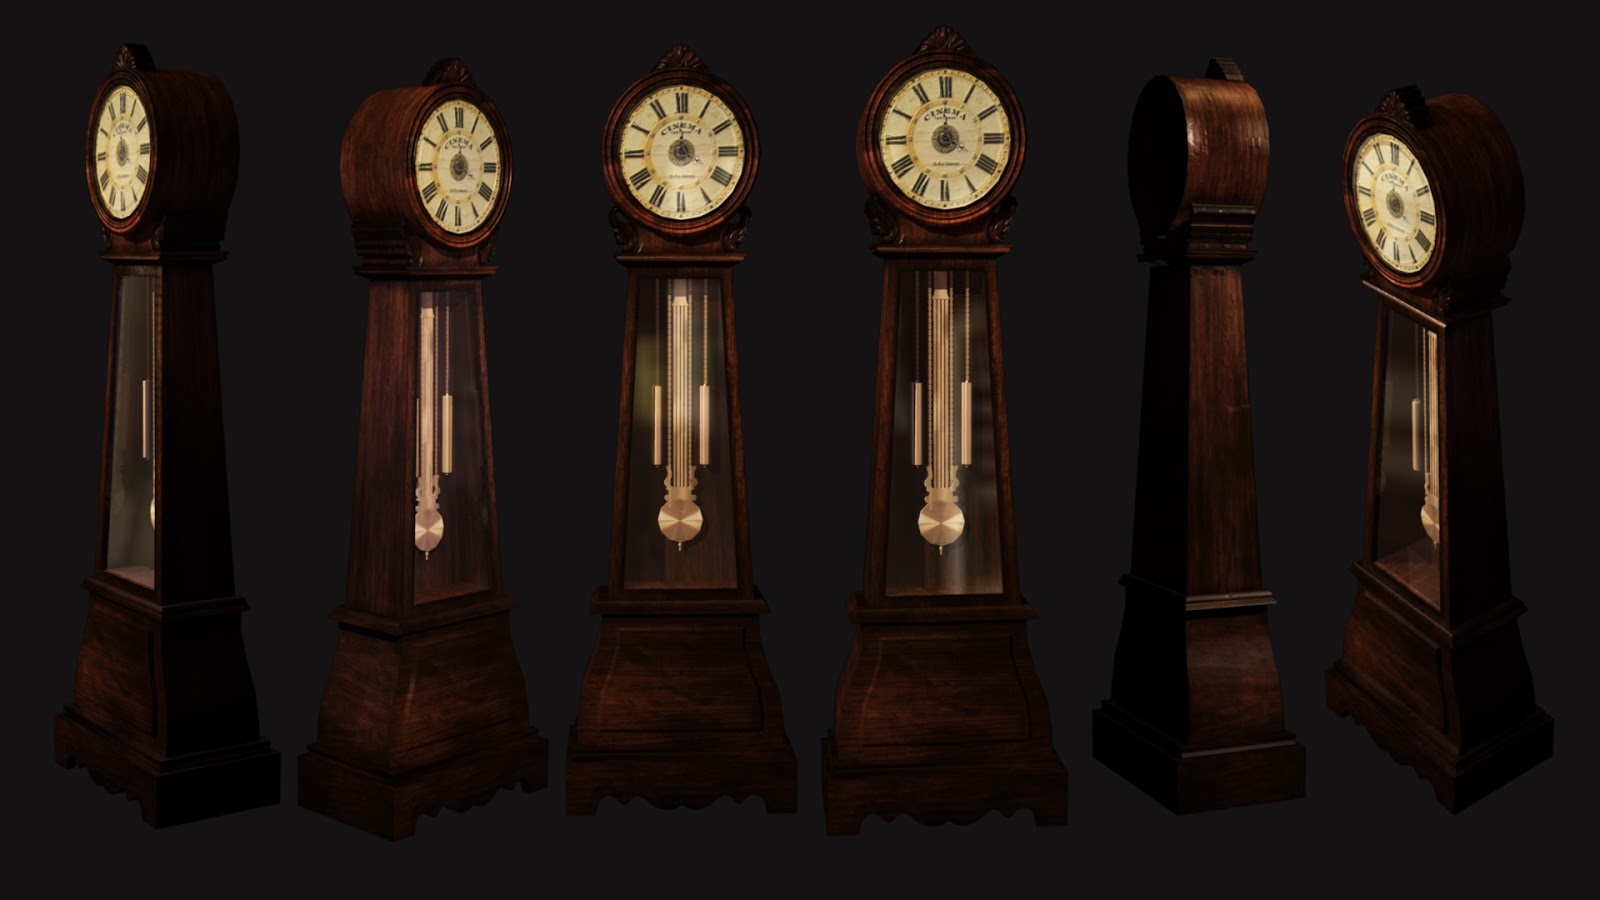 ... props, might use them in a scene soon. but here is a grandfather clock